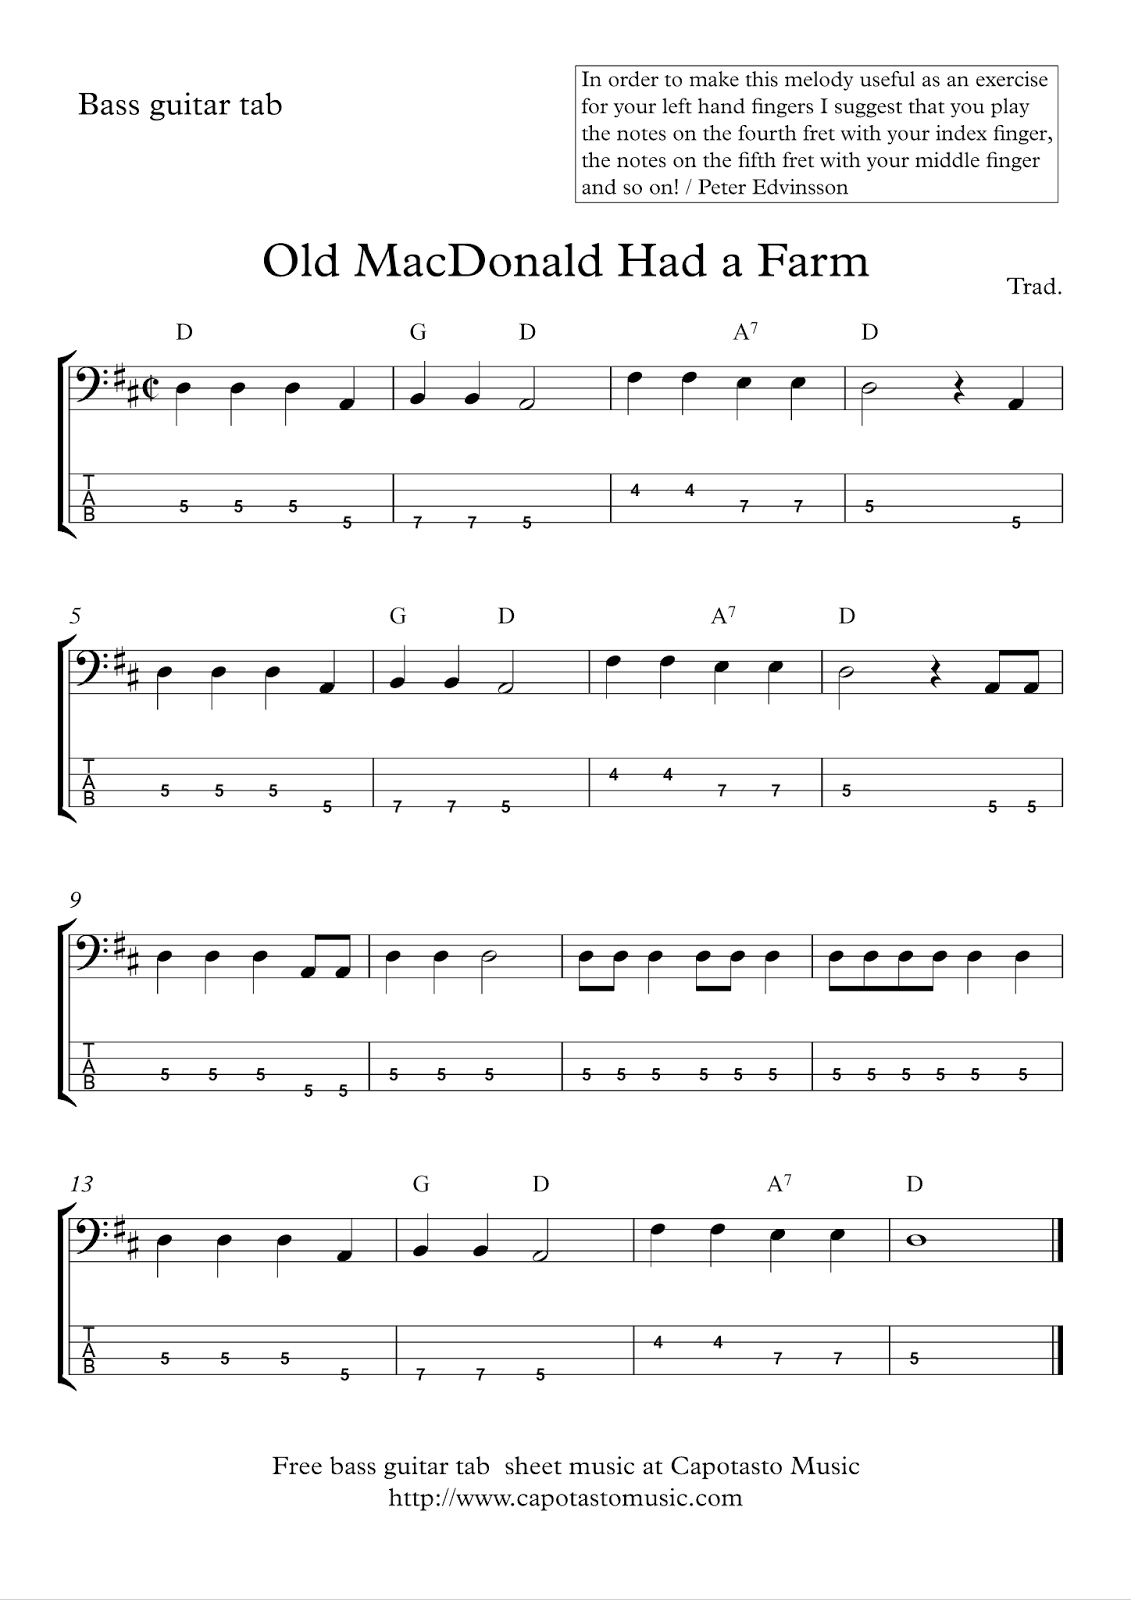 Free Easy Bass Tab Sheet Music